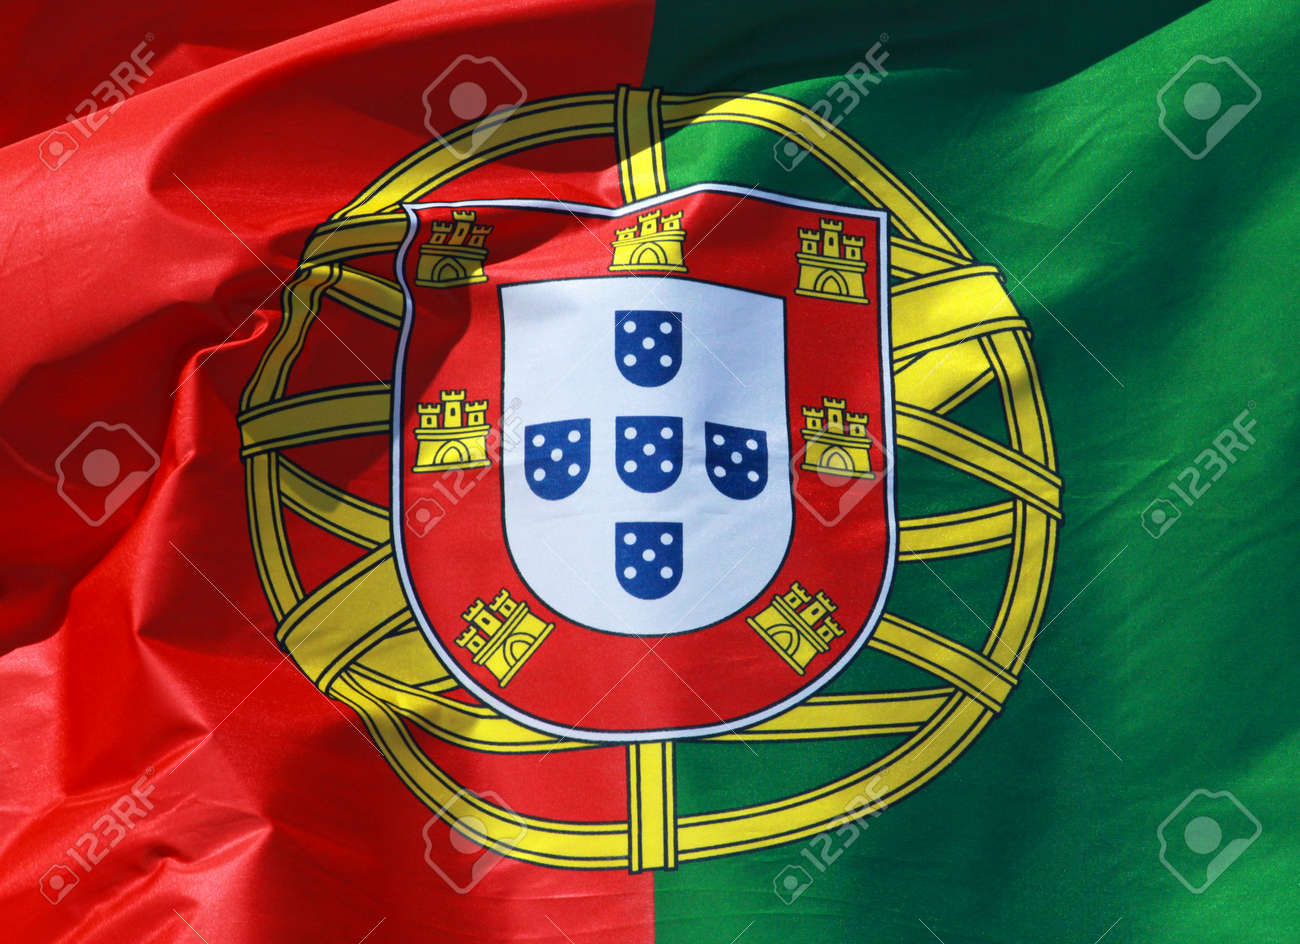 Close-up Of A National Flag Of Portugal Stock Photo, Picture And Royalty  Free Image. Image 17481697.